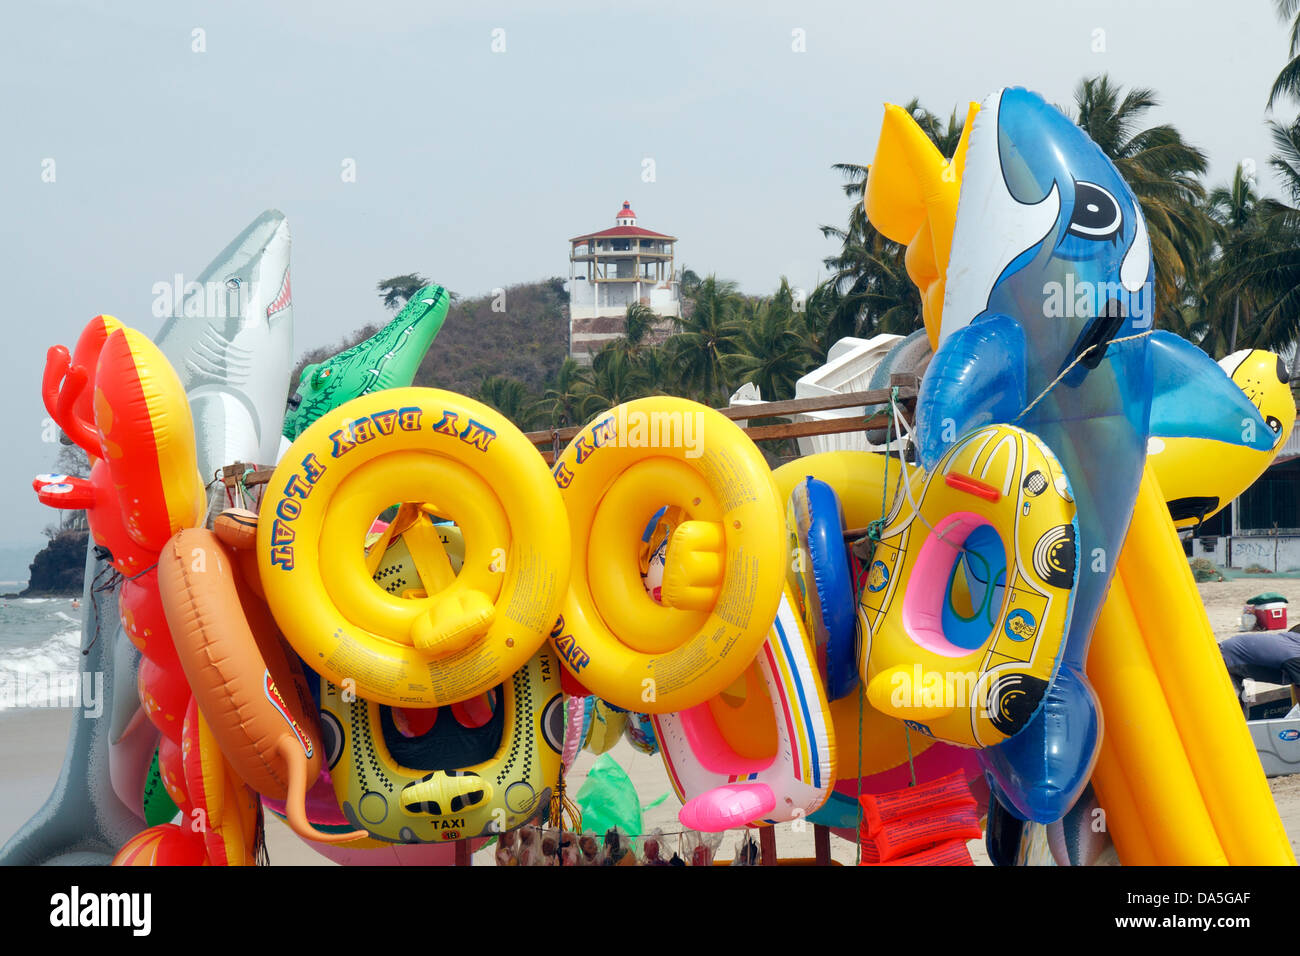 Toys For Beach : Inflated beach toys for sale by a vendor in mexico